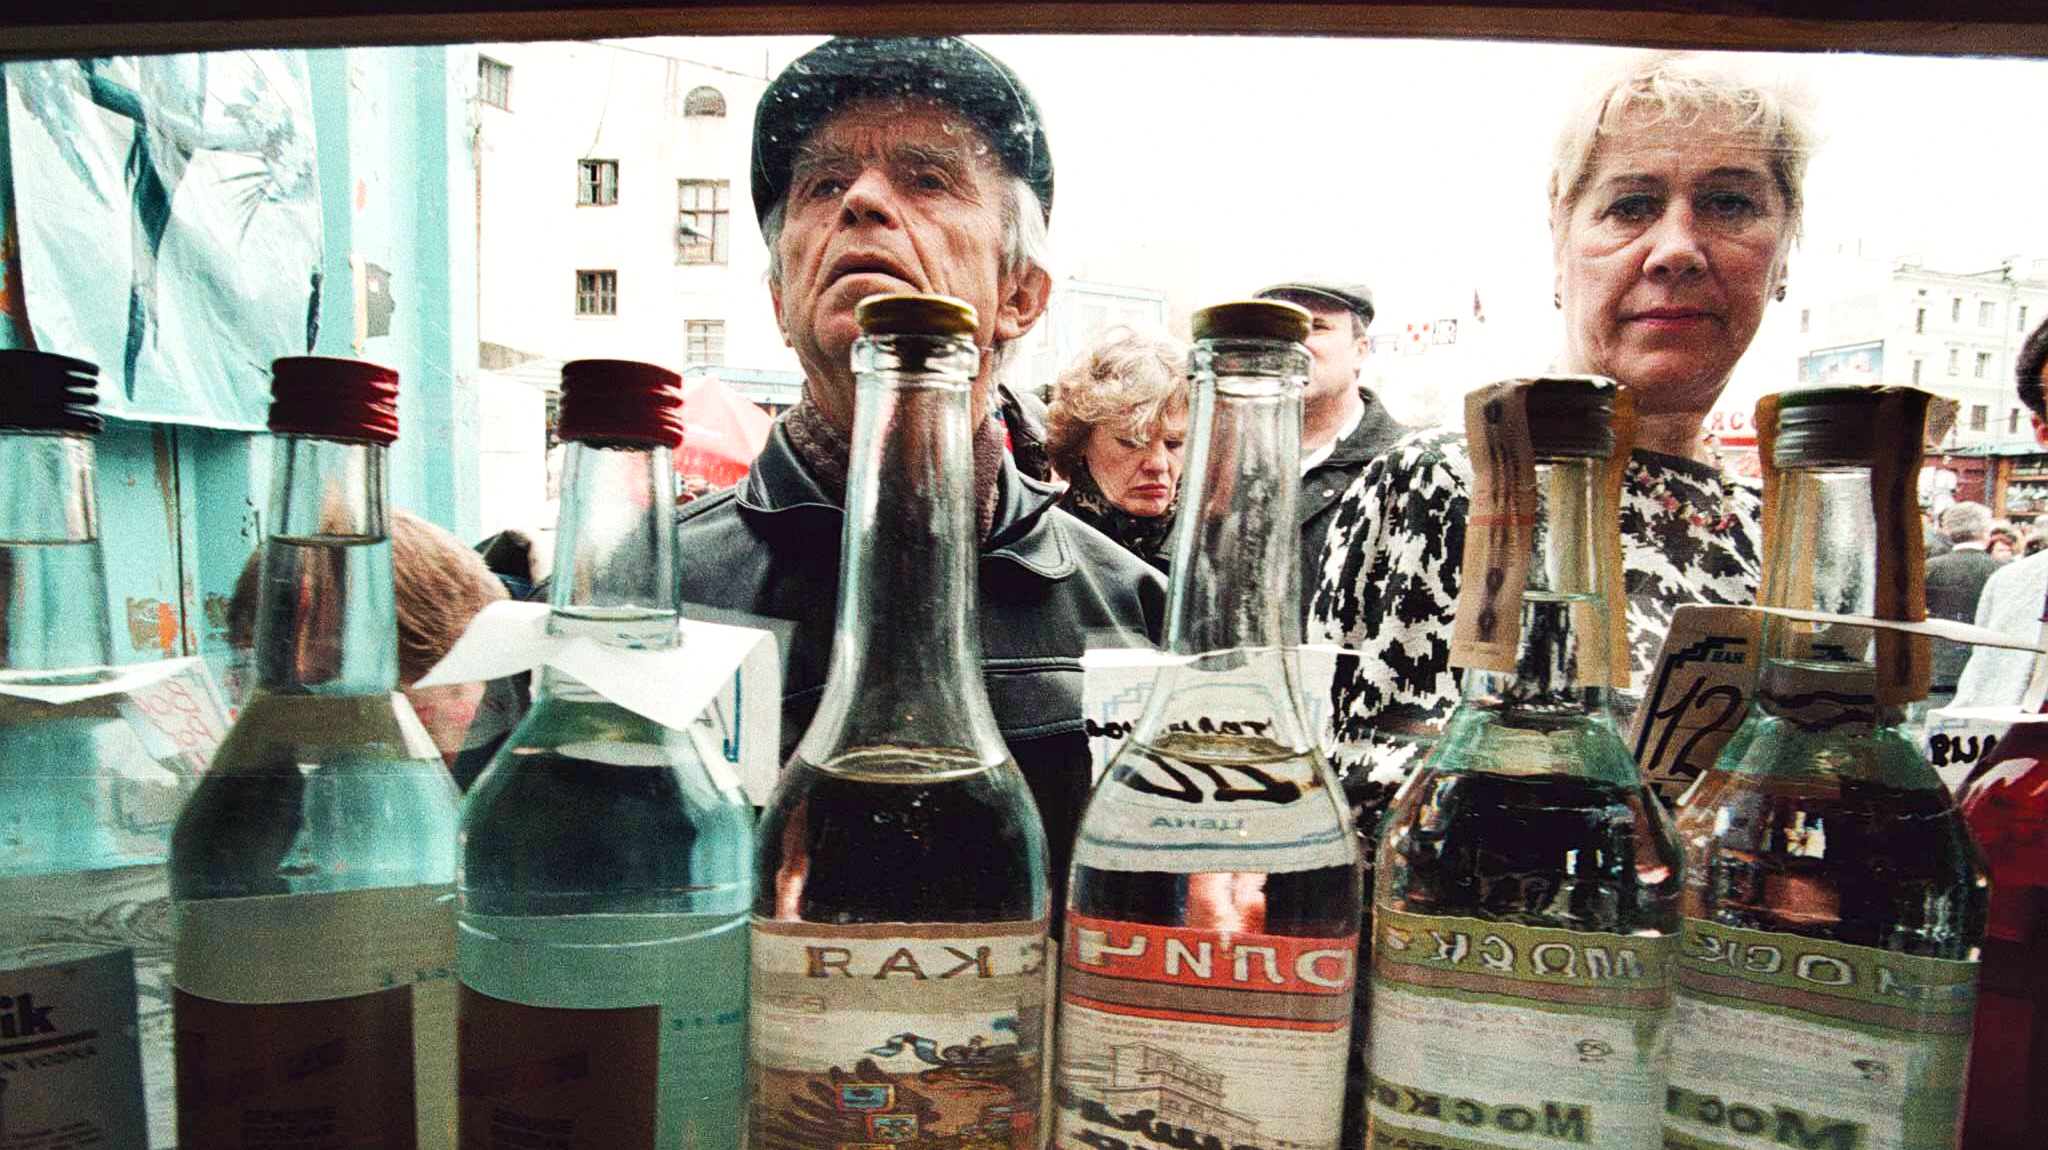 Russia's Love Affair With Vodka Lures Many To An Early Grave